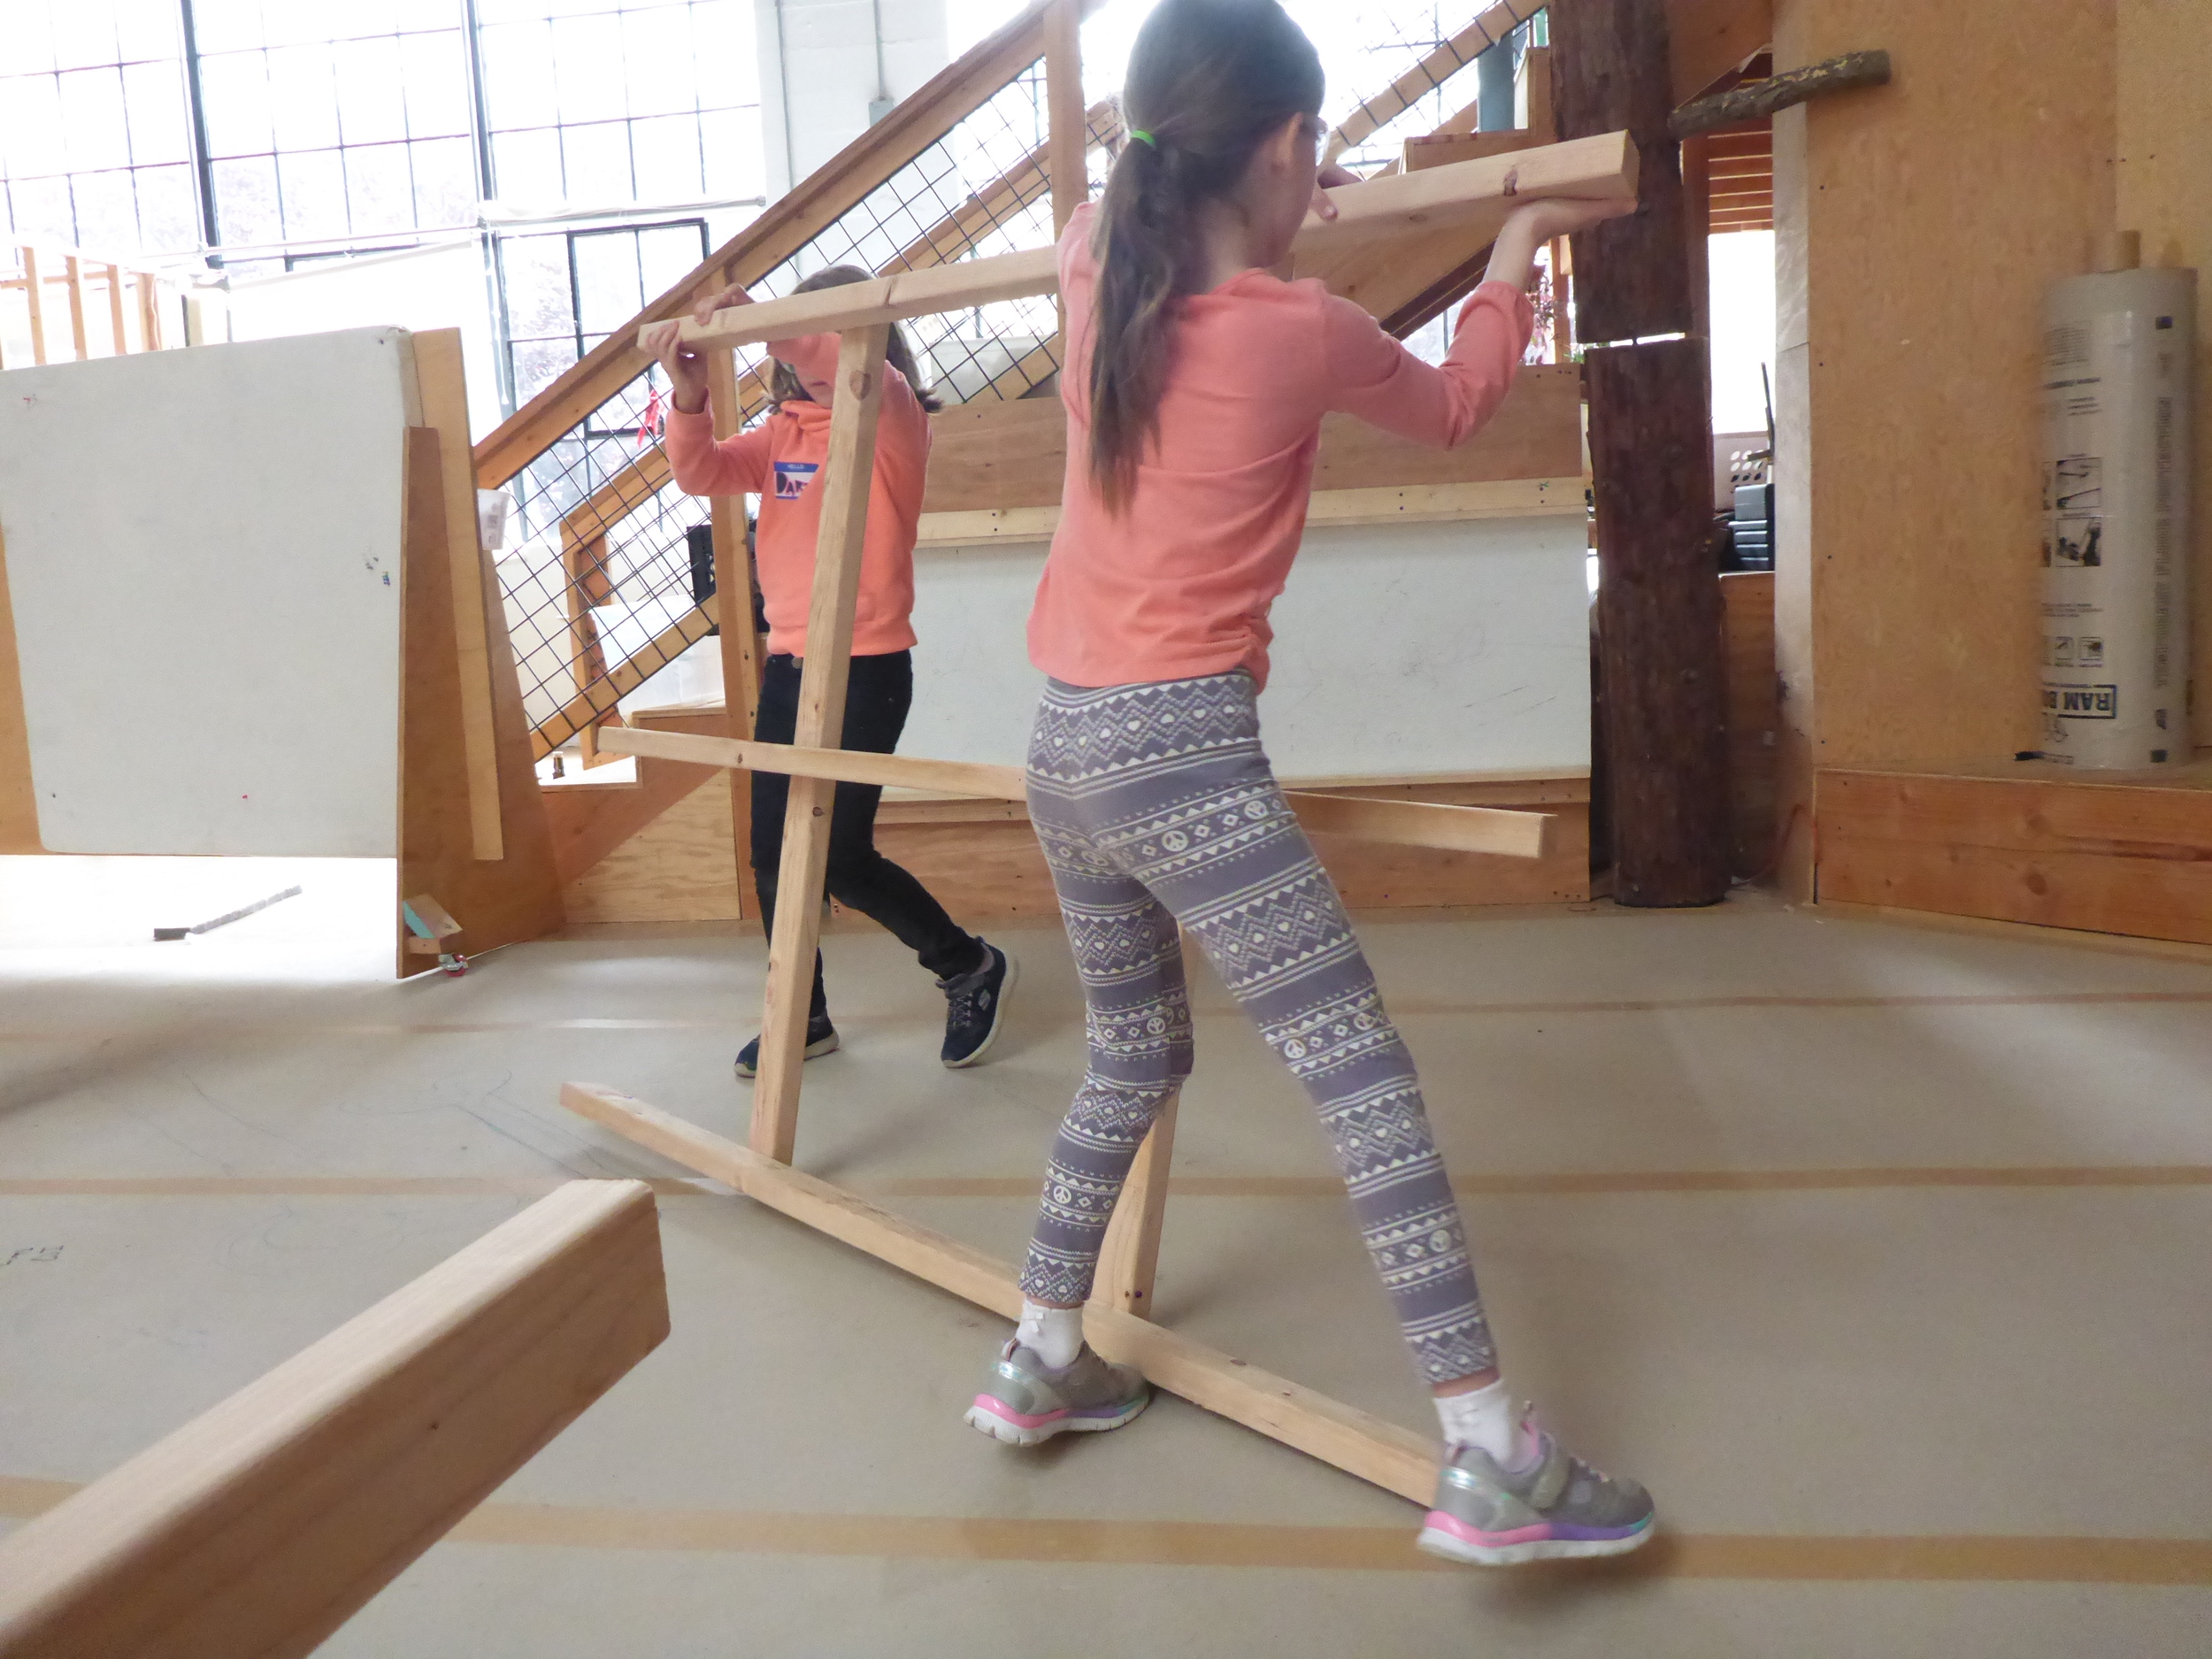 Daria and Lily helping the frame they made perform cartwheels, so it will match up with the other frame!